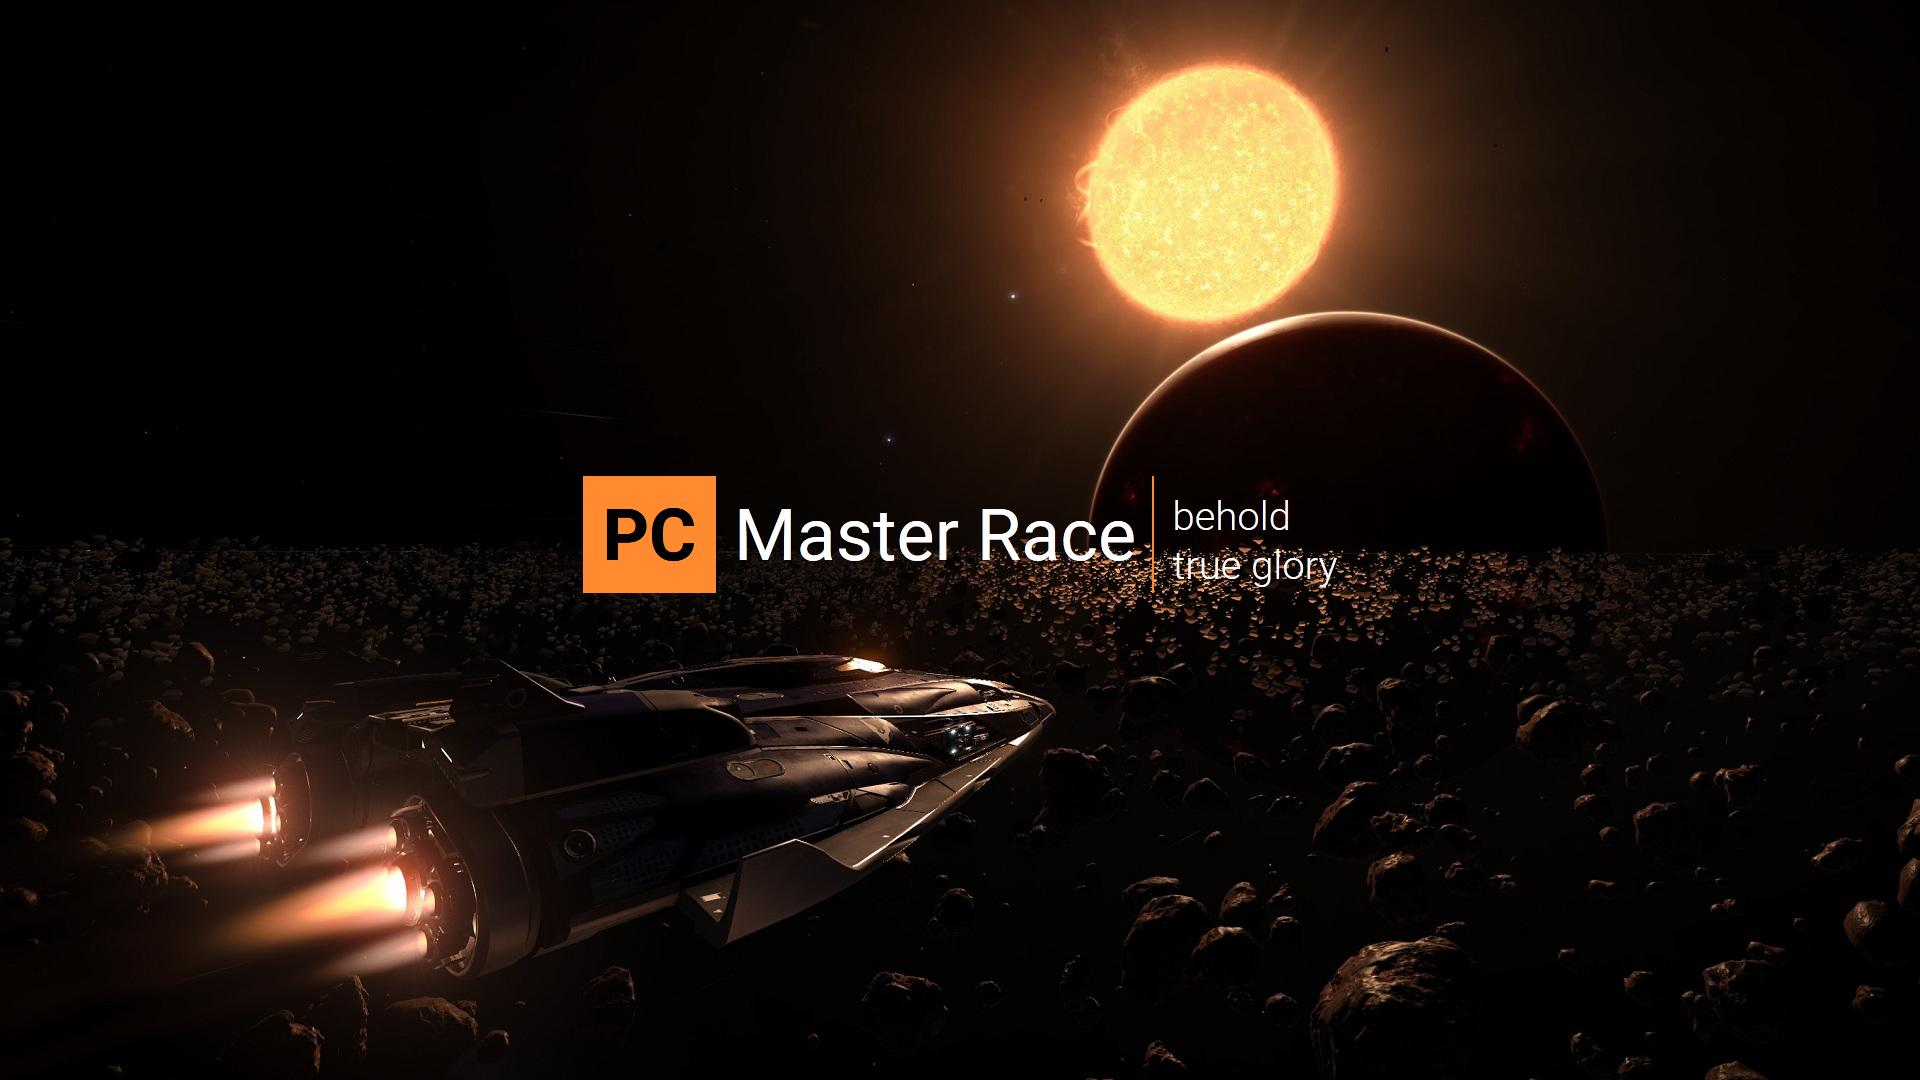 Pc Master Race Wallpapers: 1920x1080px PC Master Race Wallpapers